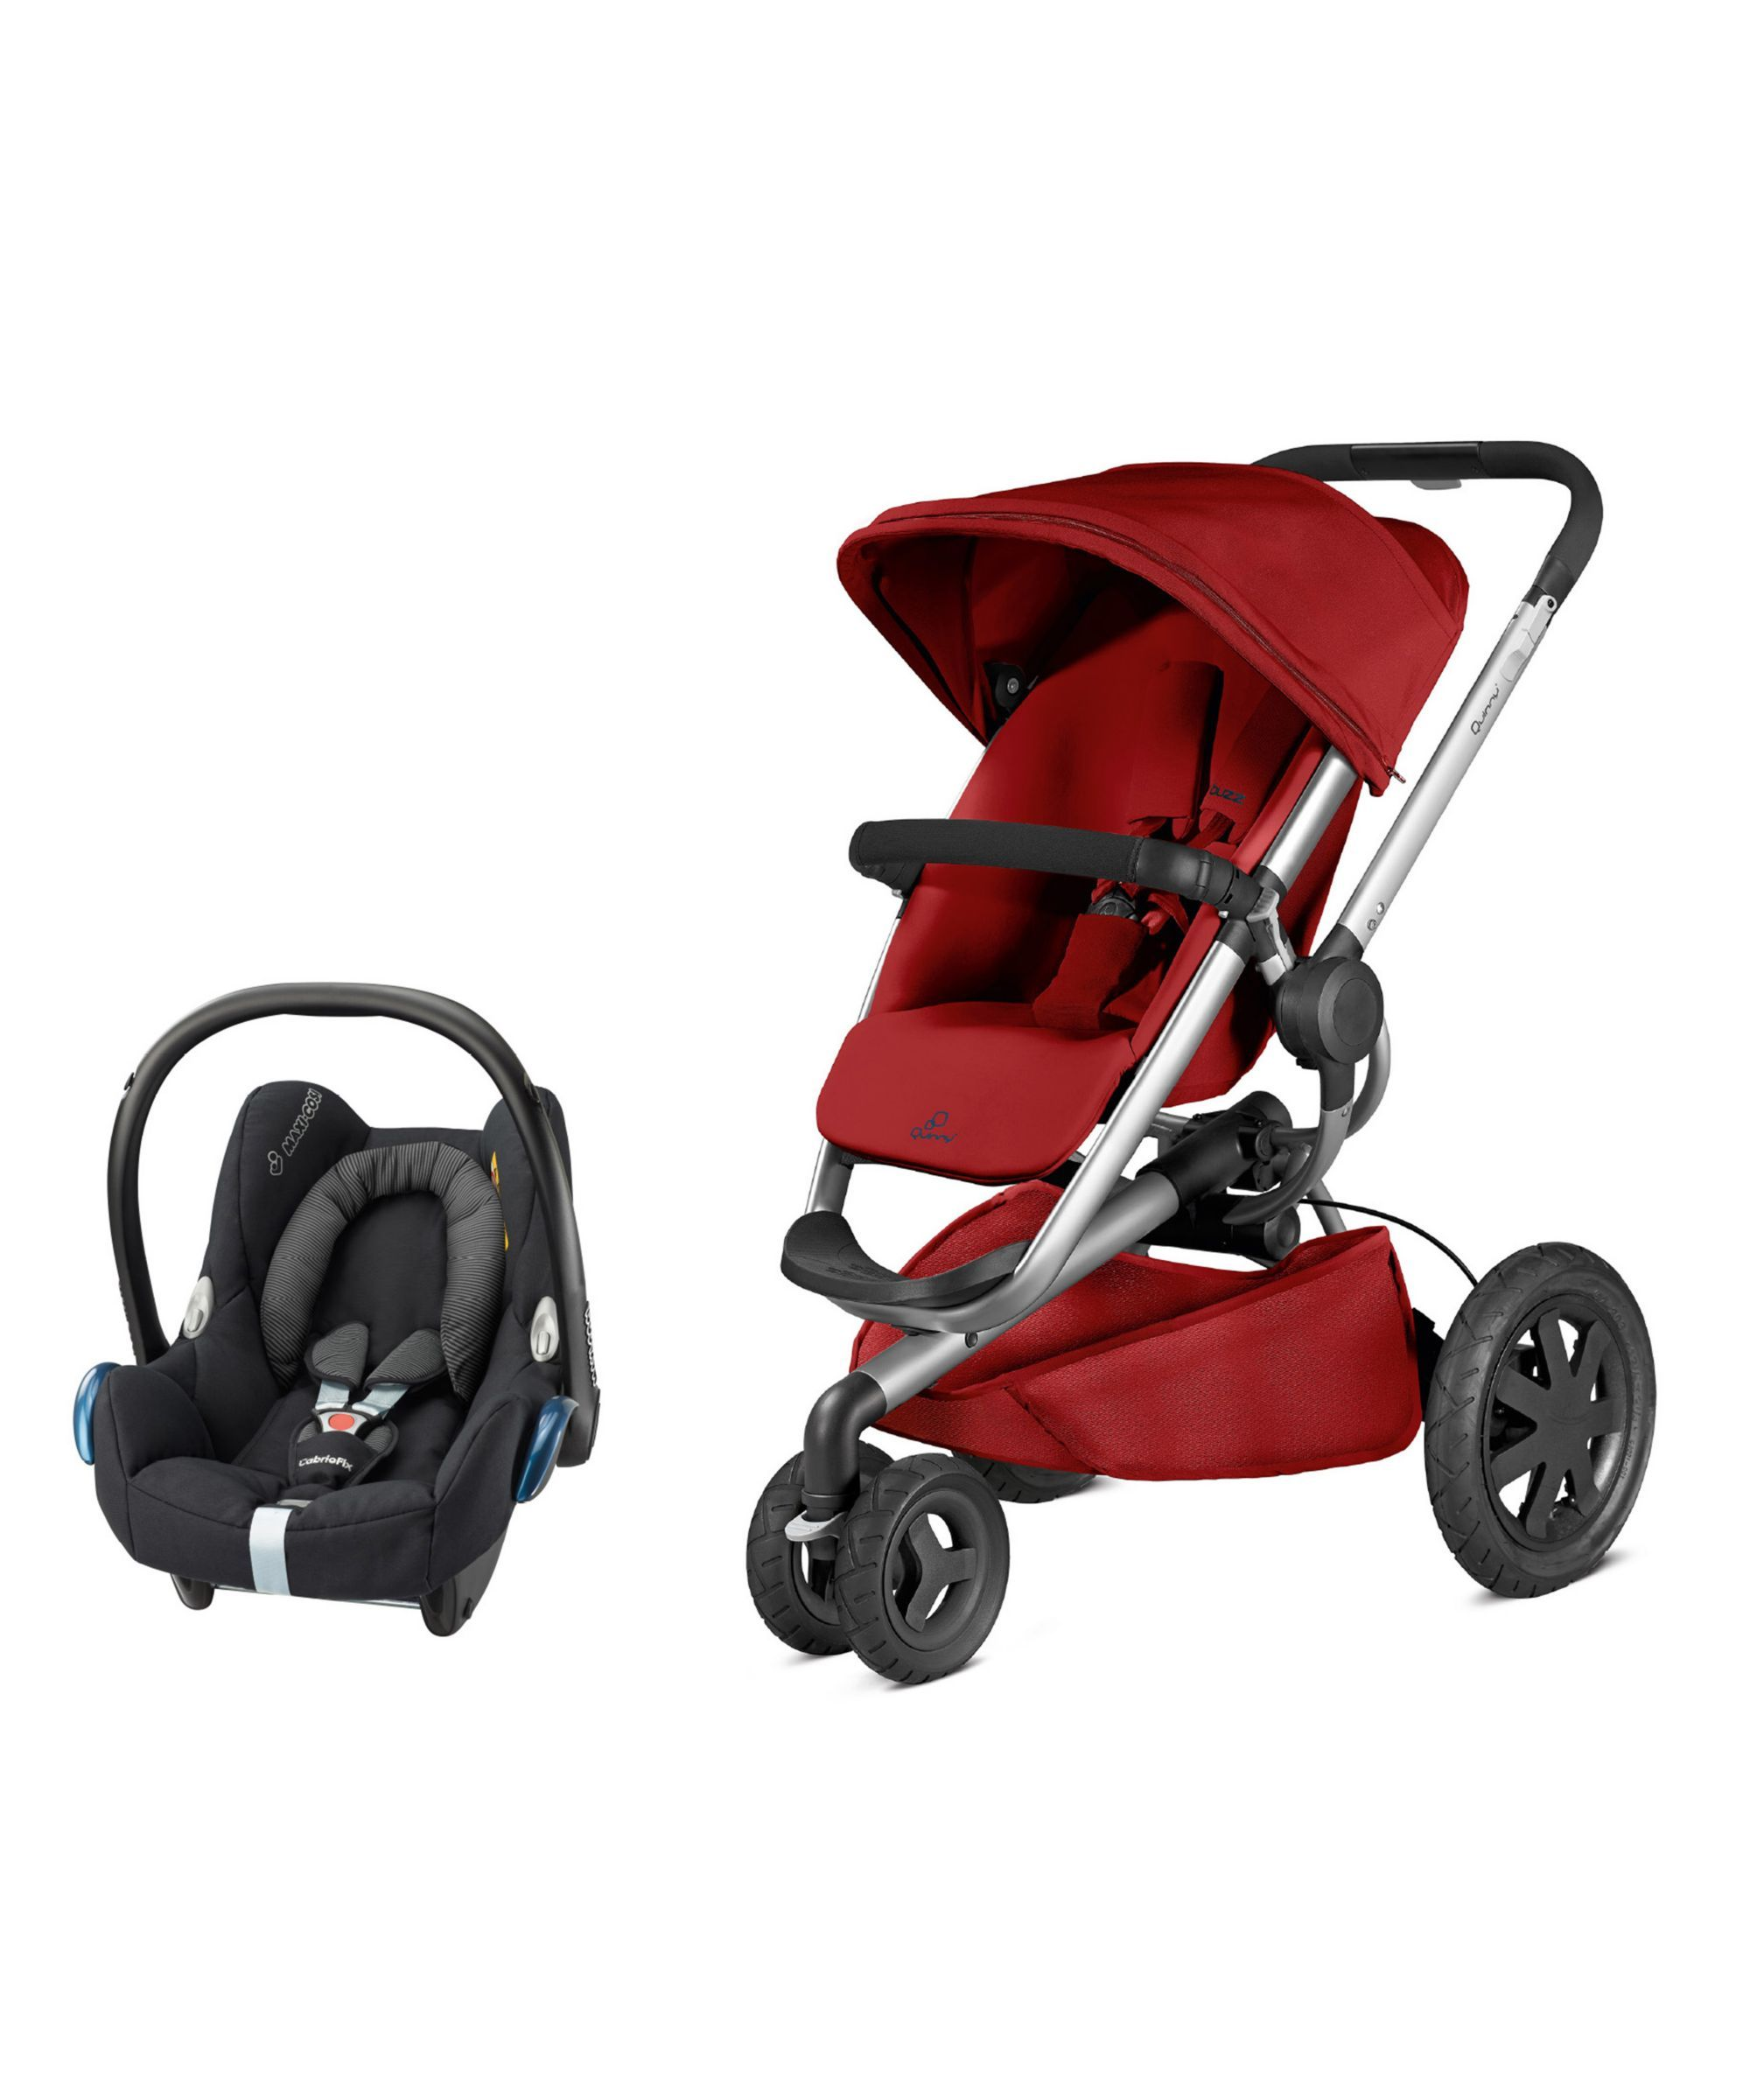 Quinny Buzz Xtra and Maxi Cosi Cabriofix Travel System